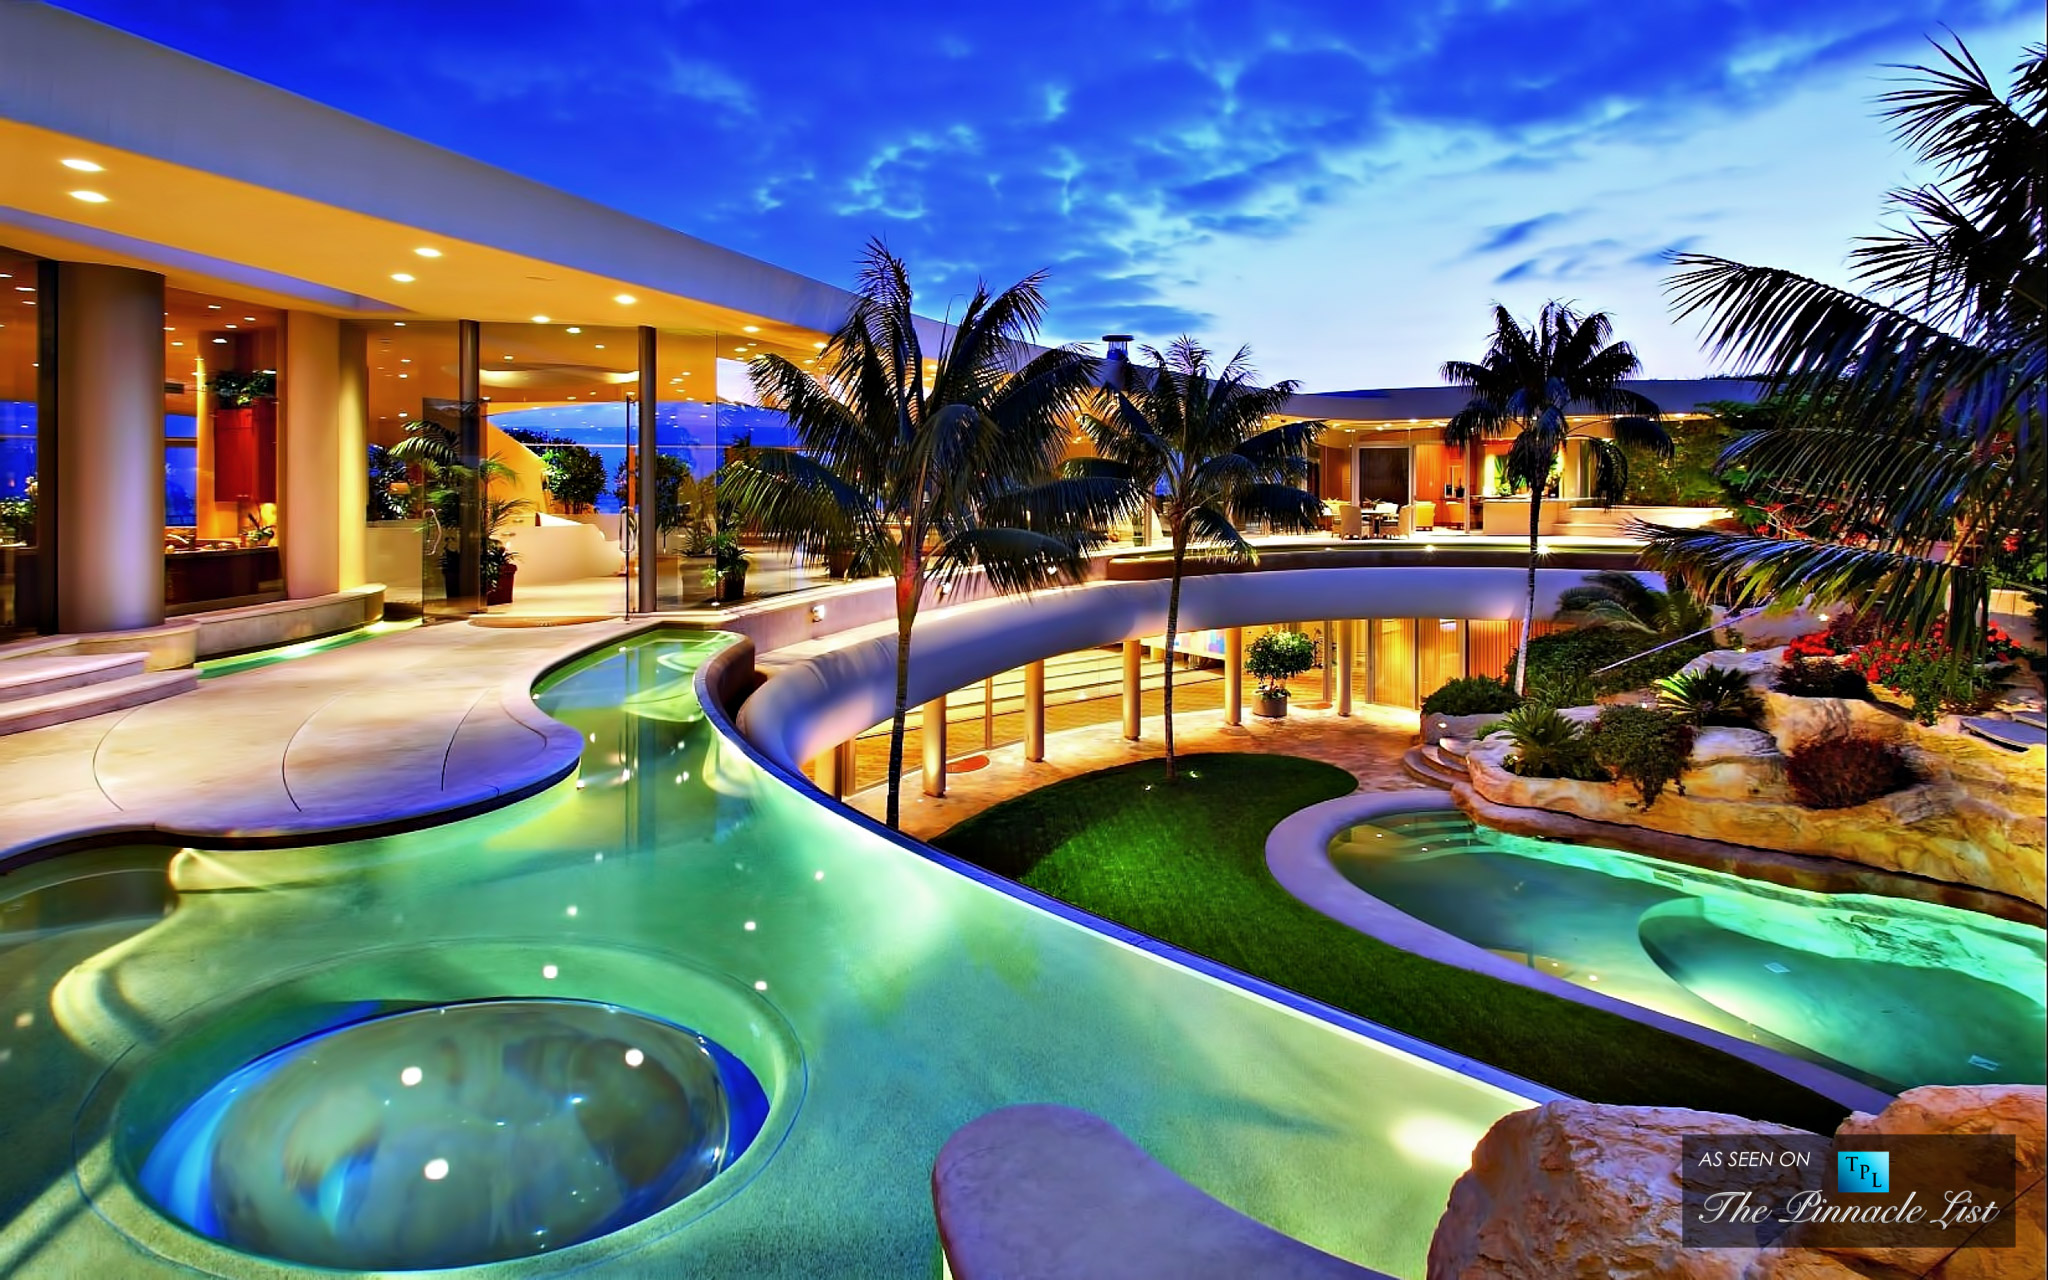 Tropical Lagoon - 5 Luxury Backyard Design Trends for Spring